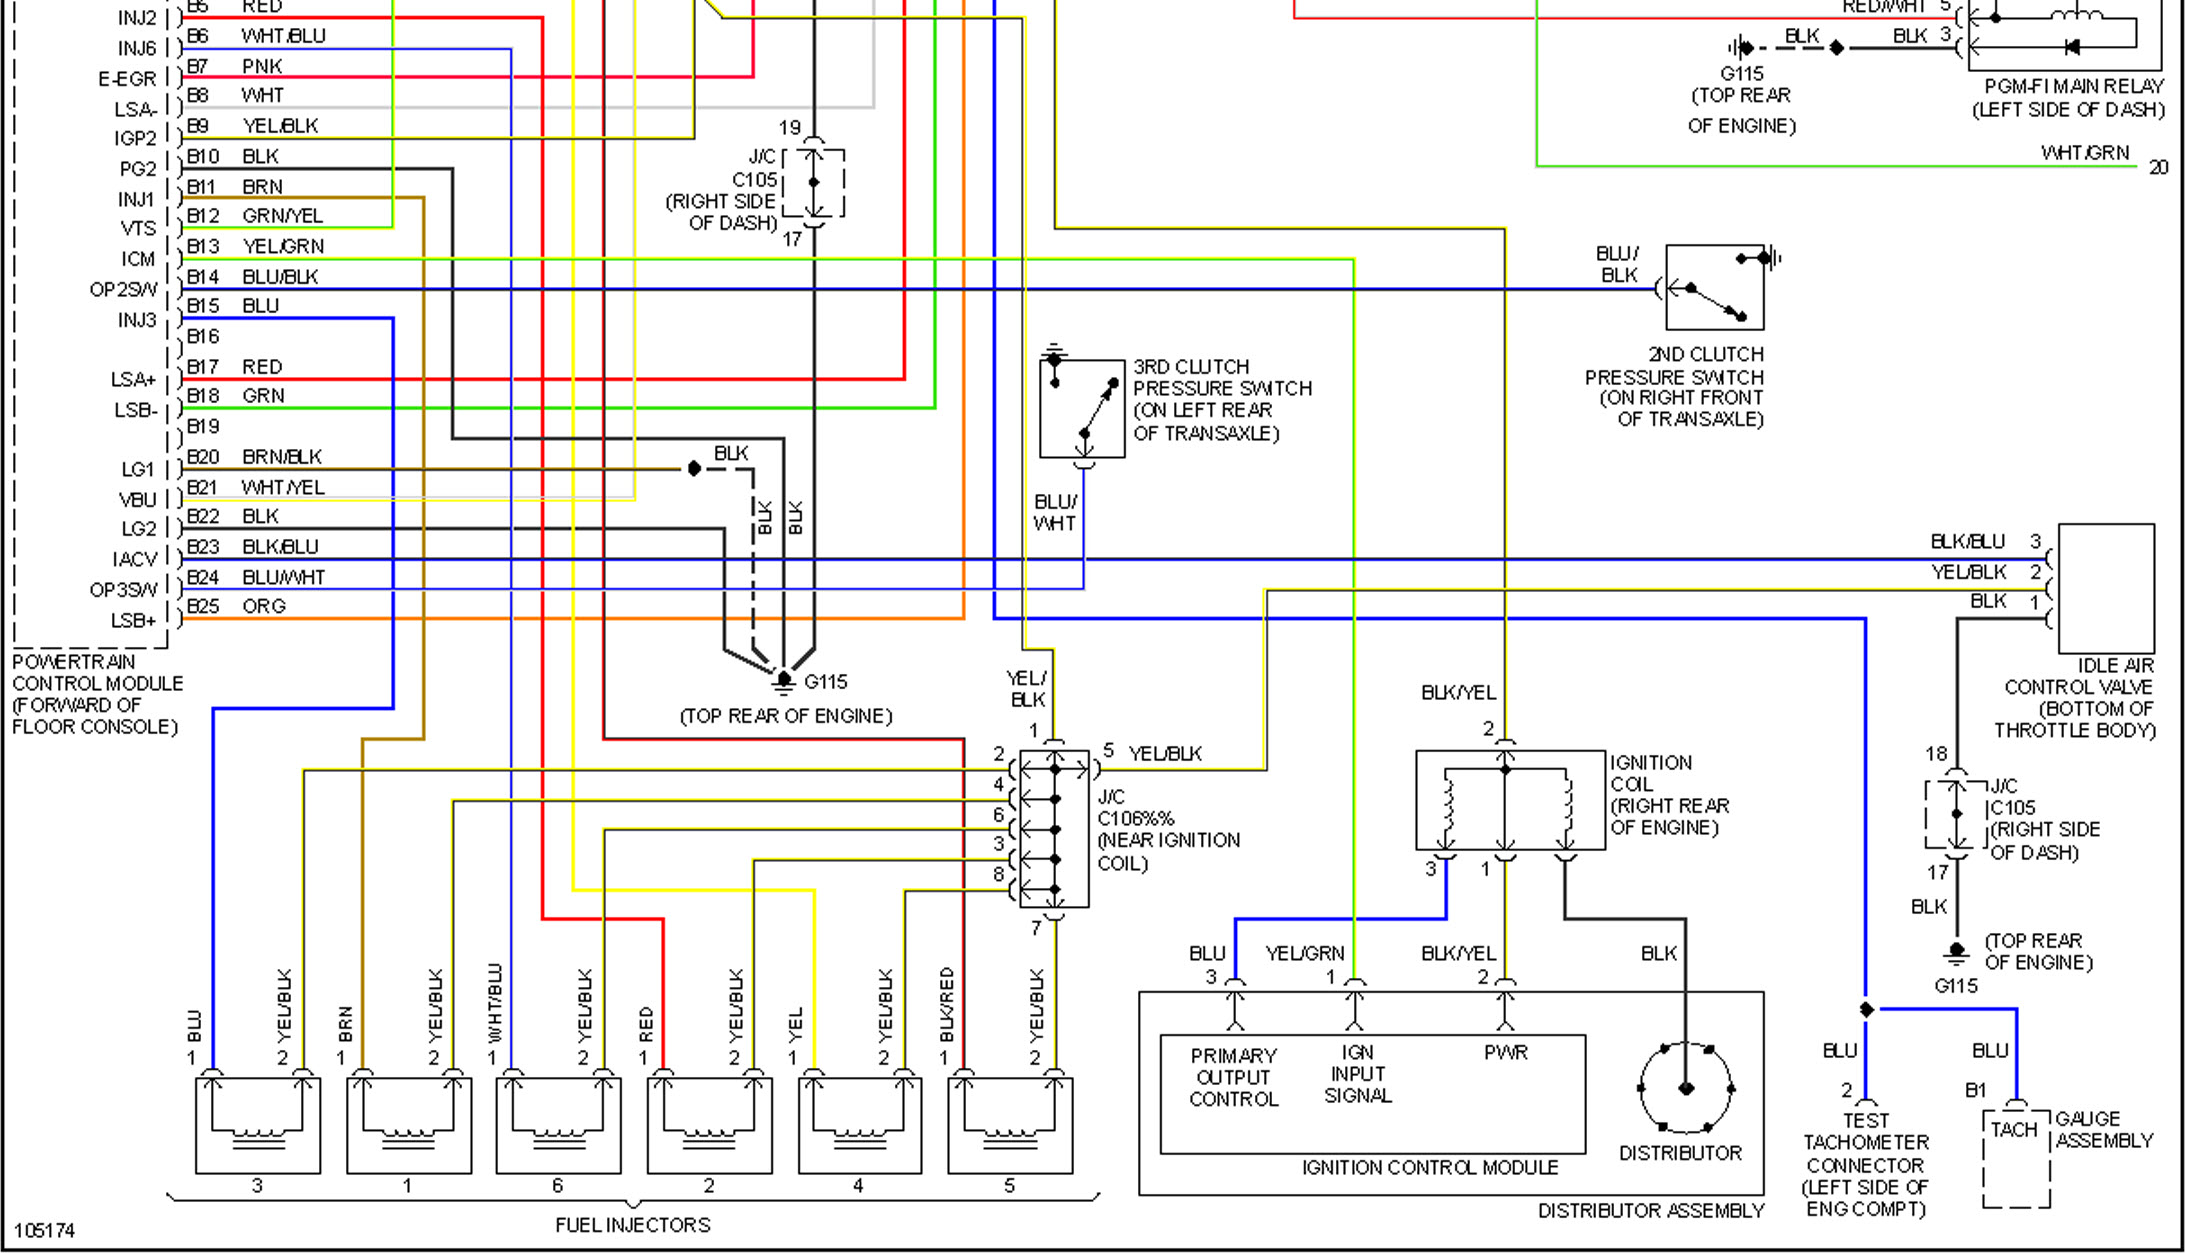 from 99 accord ignition wires diagram wiring diagram Basic Ignition Switch Wiring Diagram from 99 accord ignition wires diagram